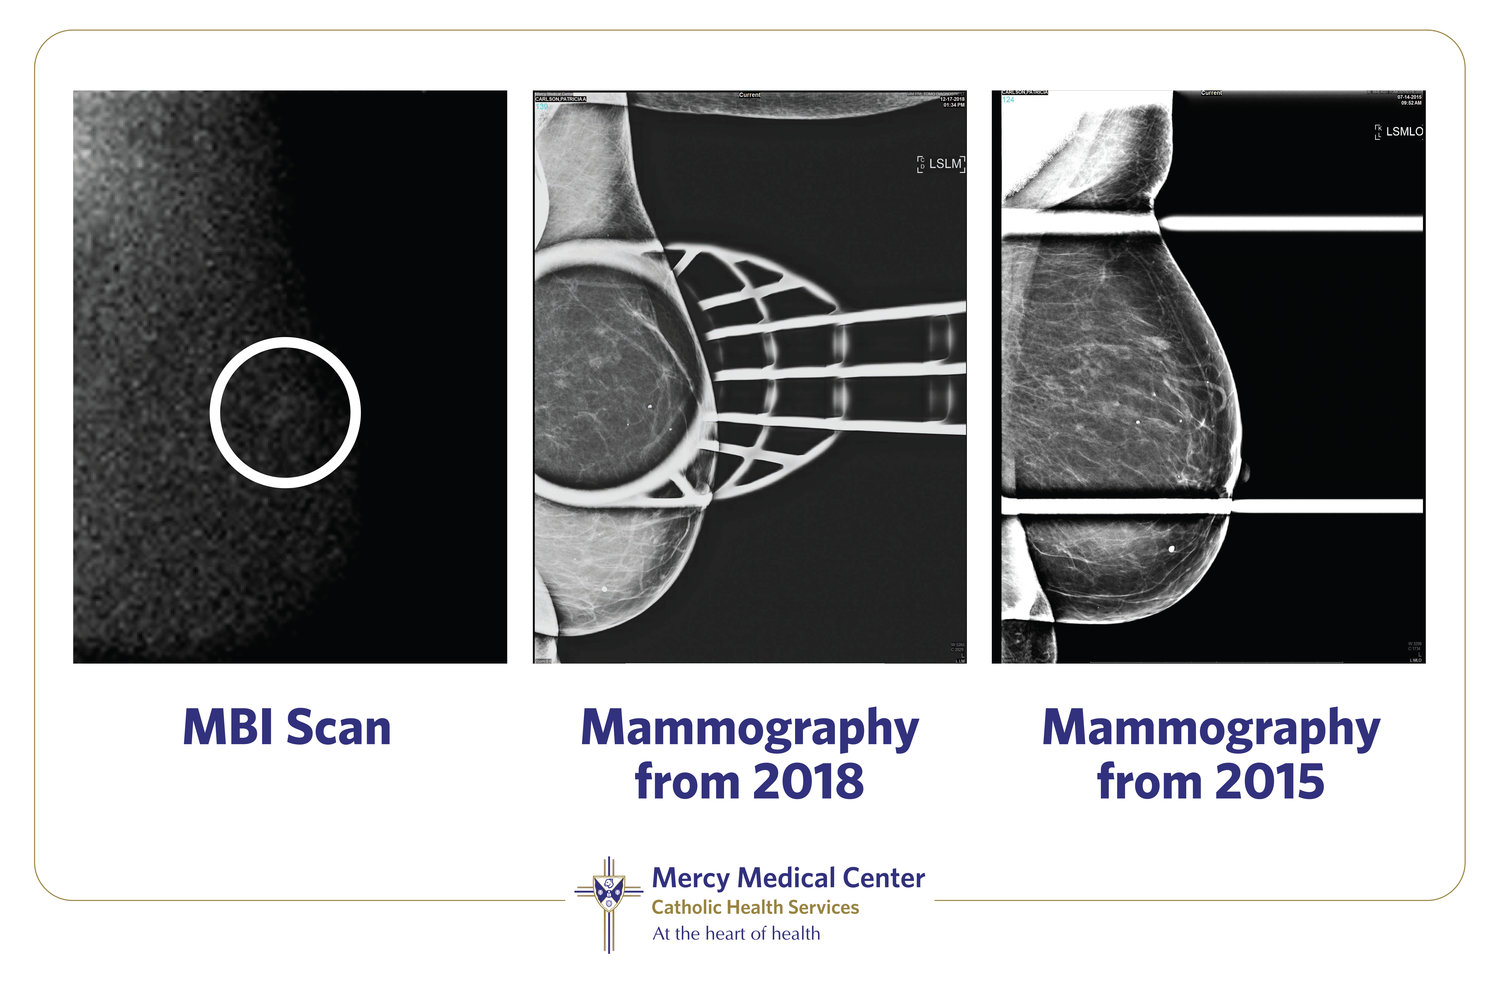 Mercy Medical Center displayed photos of Carlson's previous mammography screenings beside her MBI, which shows its precision, compared to traditional technologies.